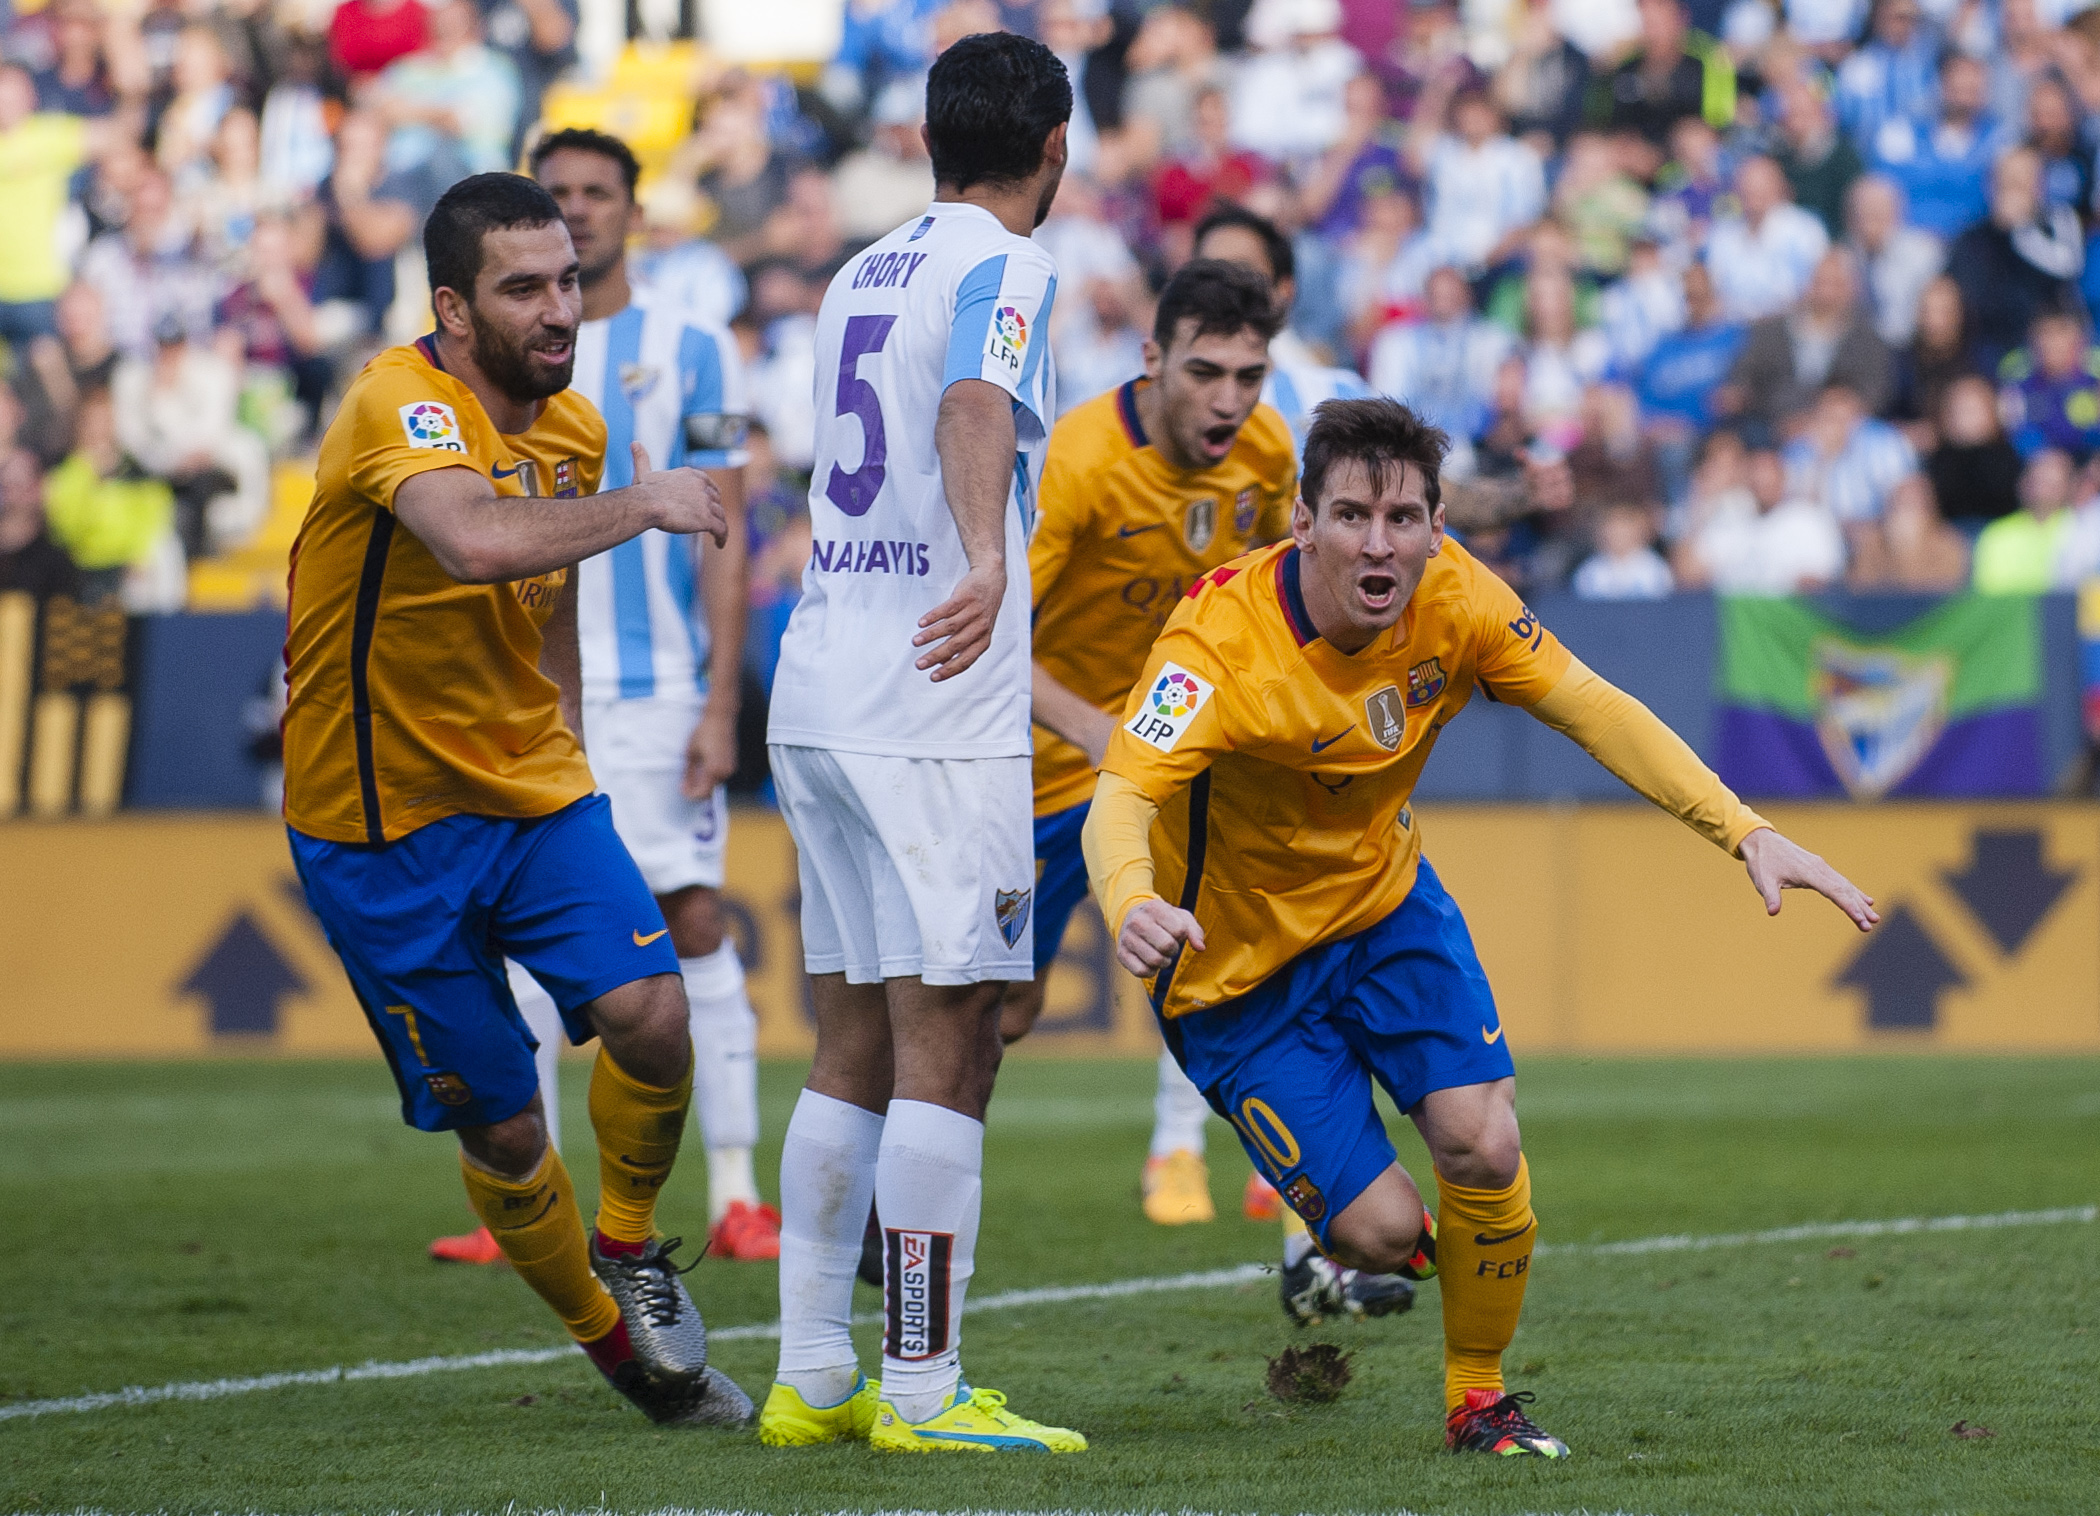 Spain: All Leagues & Cups - Latest Results & Fixtures